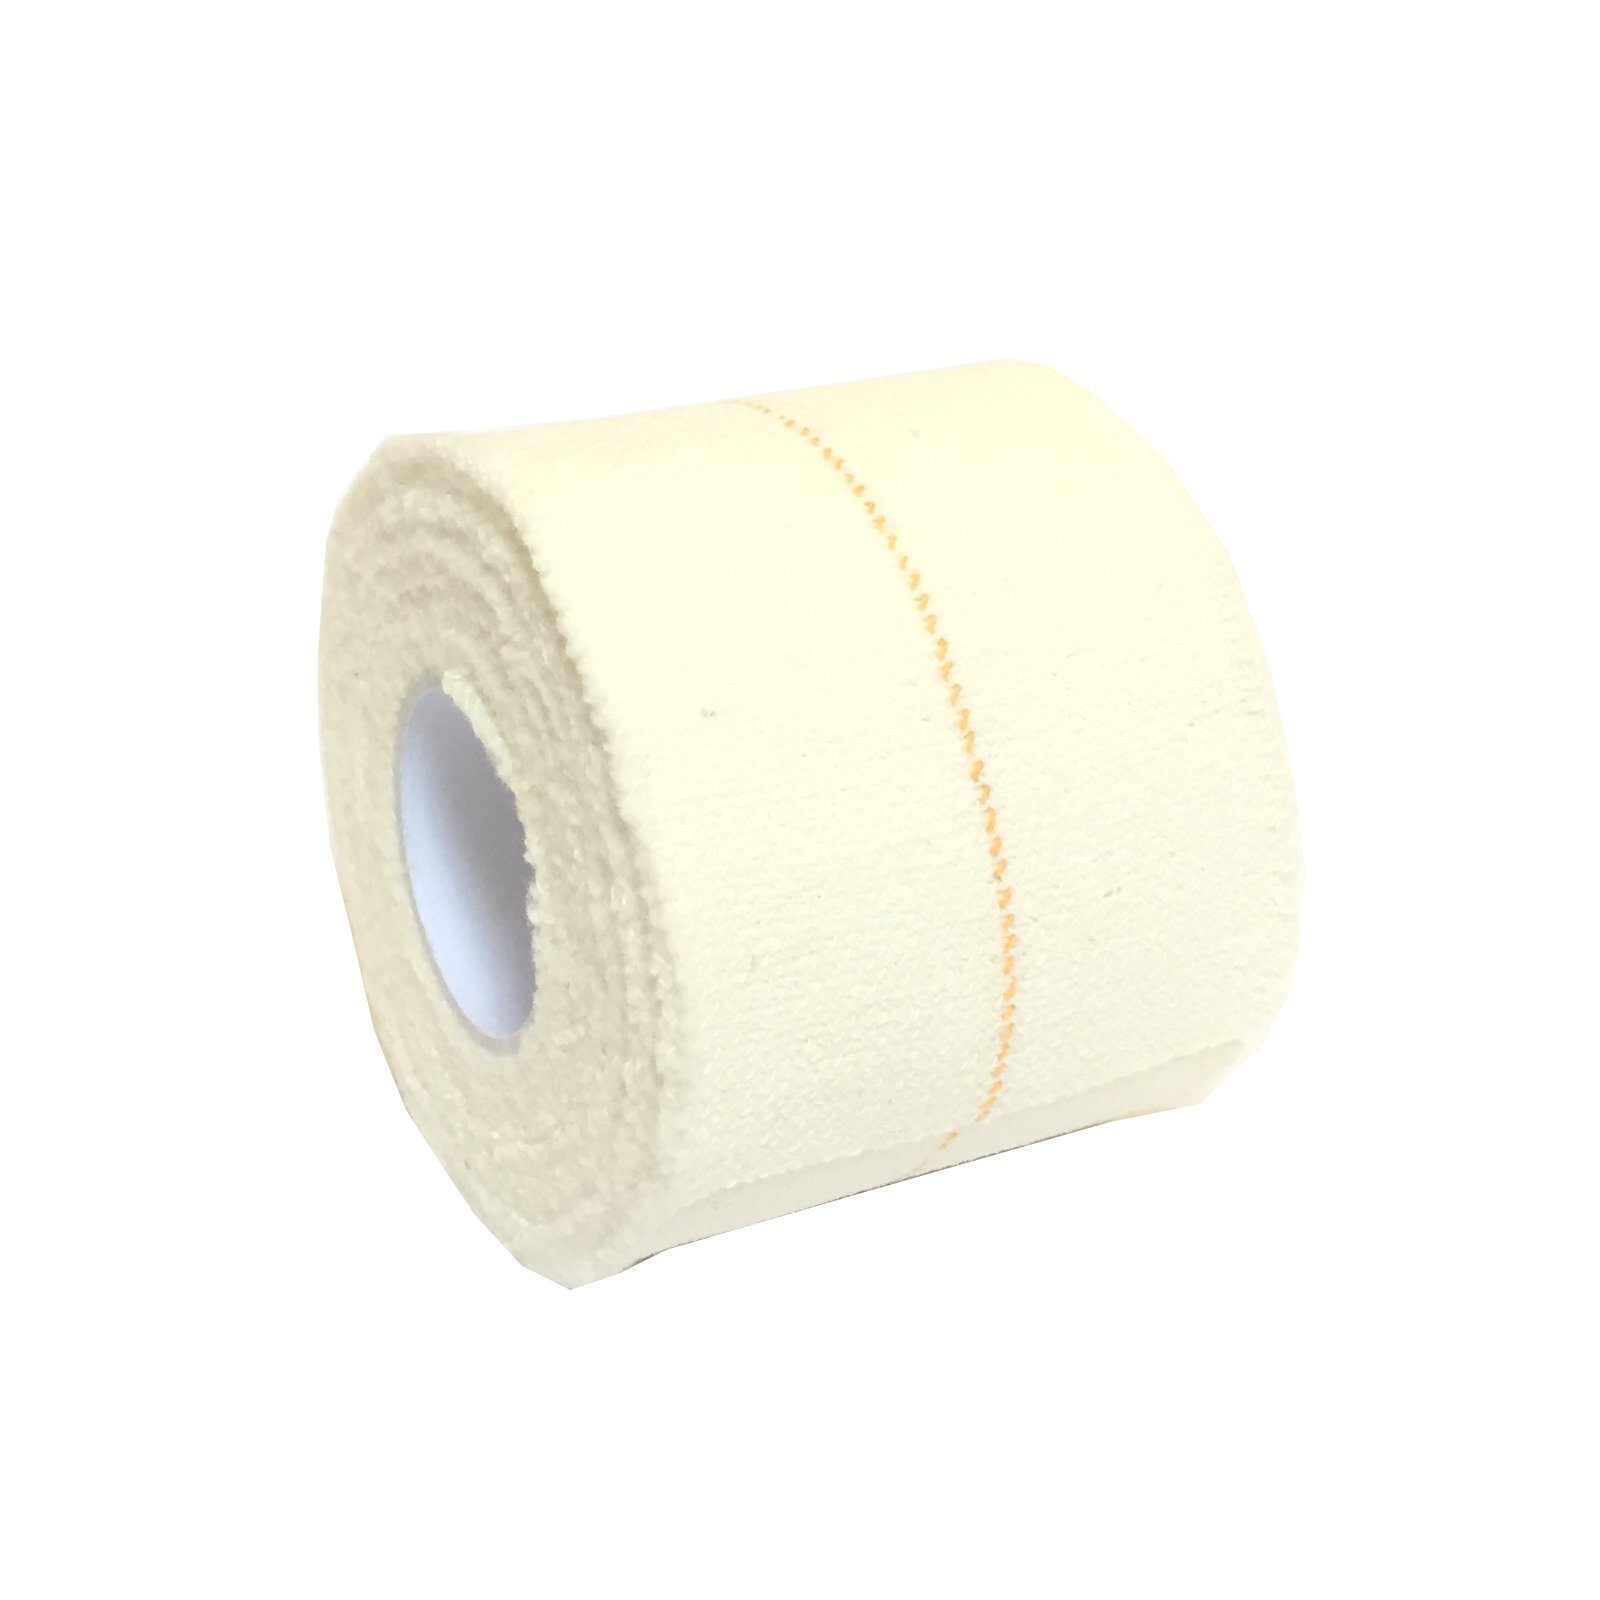 6 Rolls of 5CM x 4.5M QUALICARE PRO EAB Elastic Adhesive Bandage Athletic Sports Rugby Lifting Football Knee Ankle Elbow Wrist Joint Support Tape STRAPING White